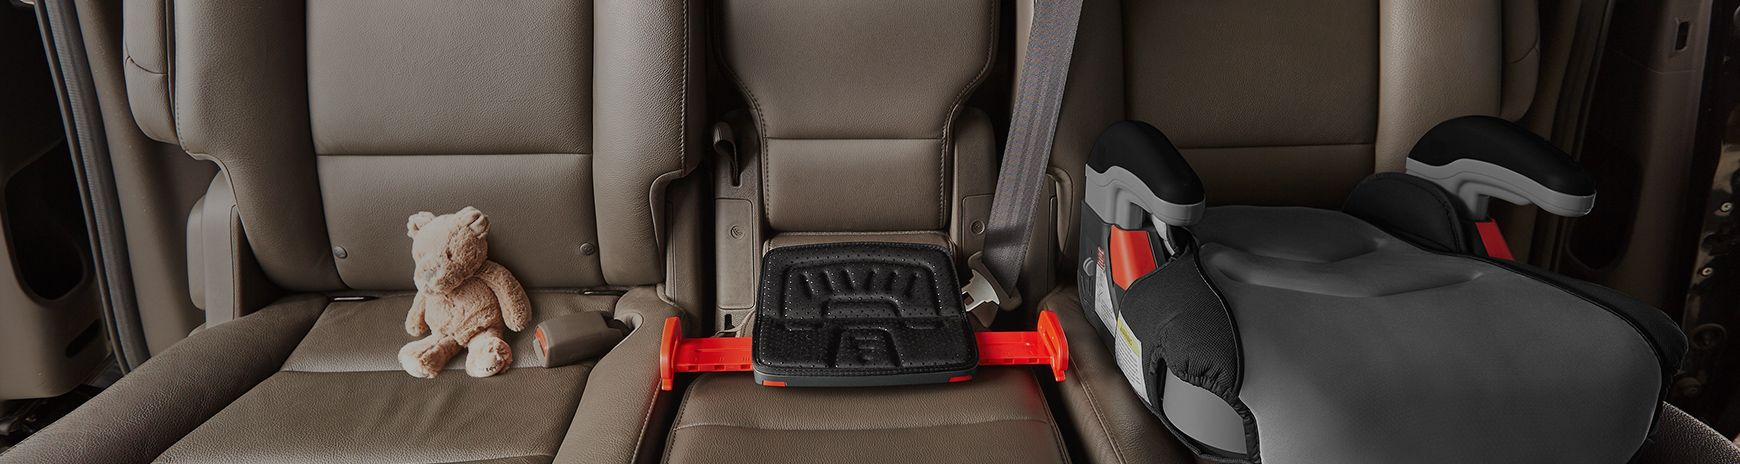 Mifold Grab Go Booster Seat